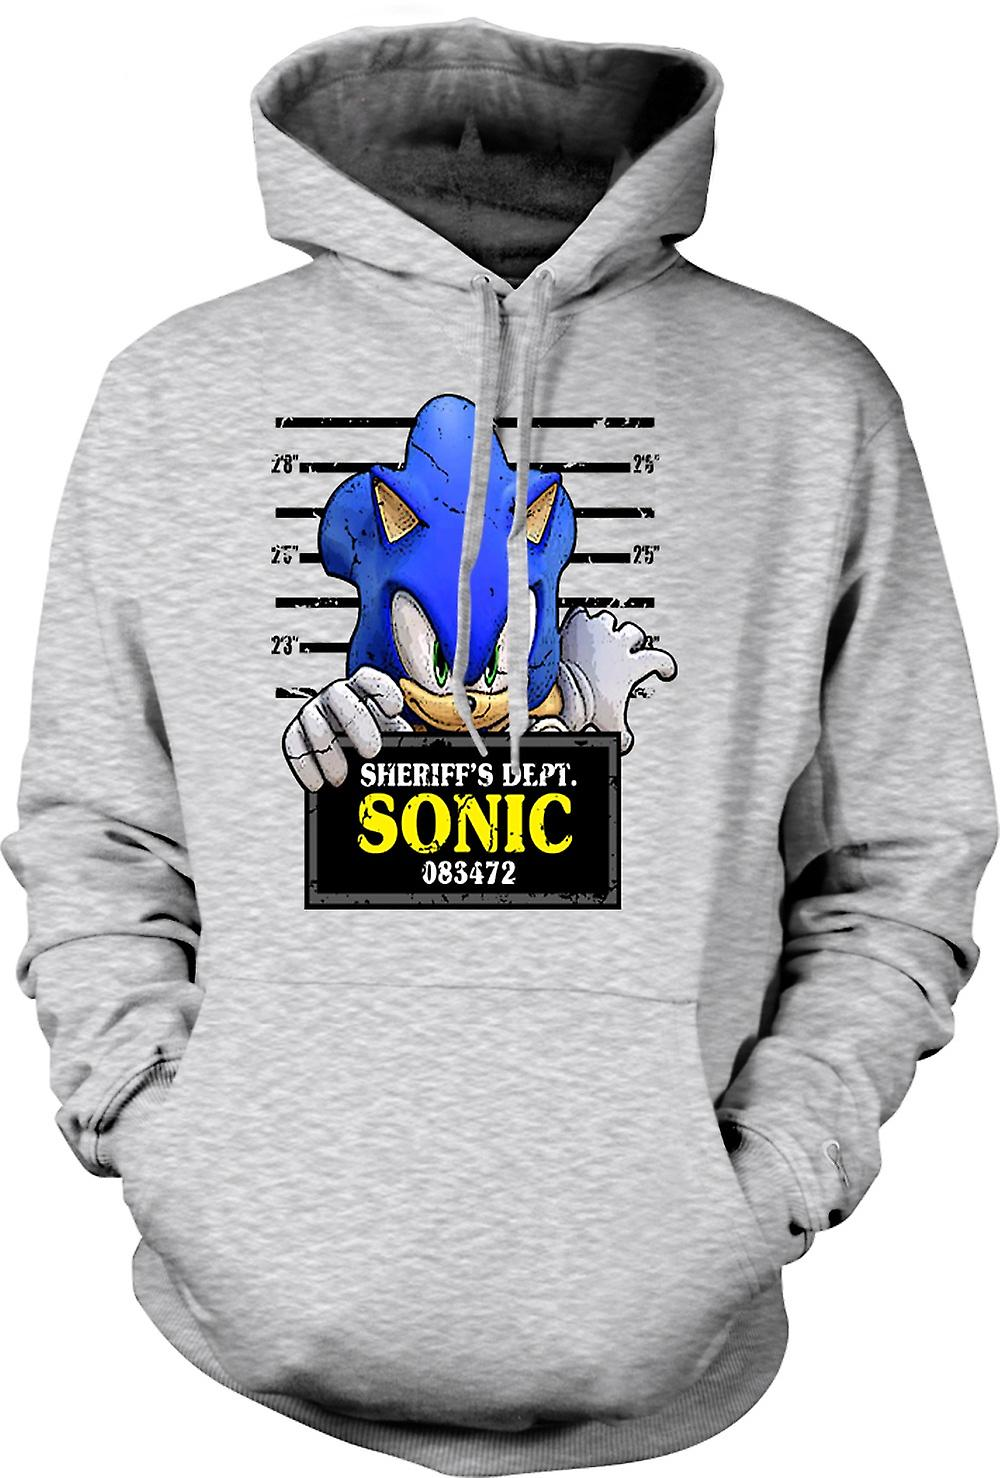 Mens Hoodie - Sonic The Hedgehog - Mug Shot